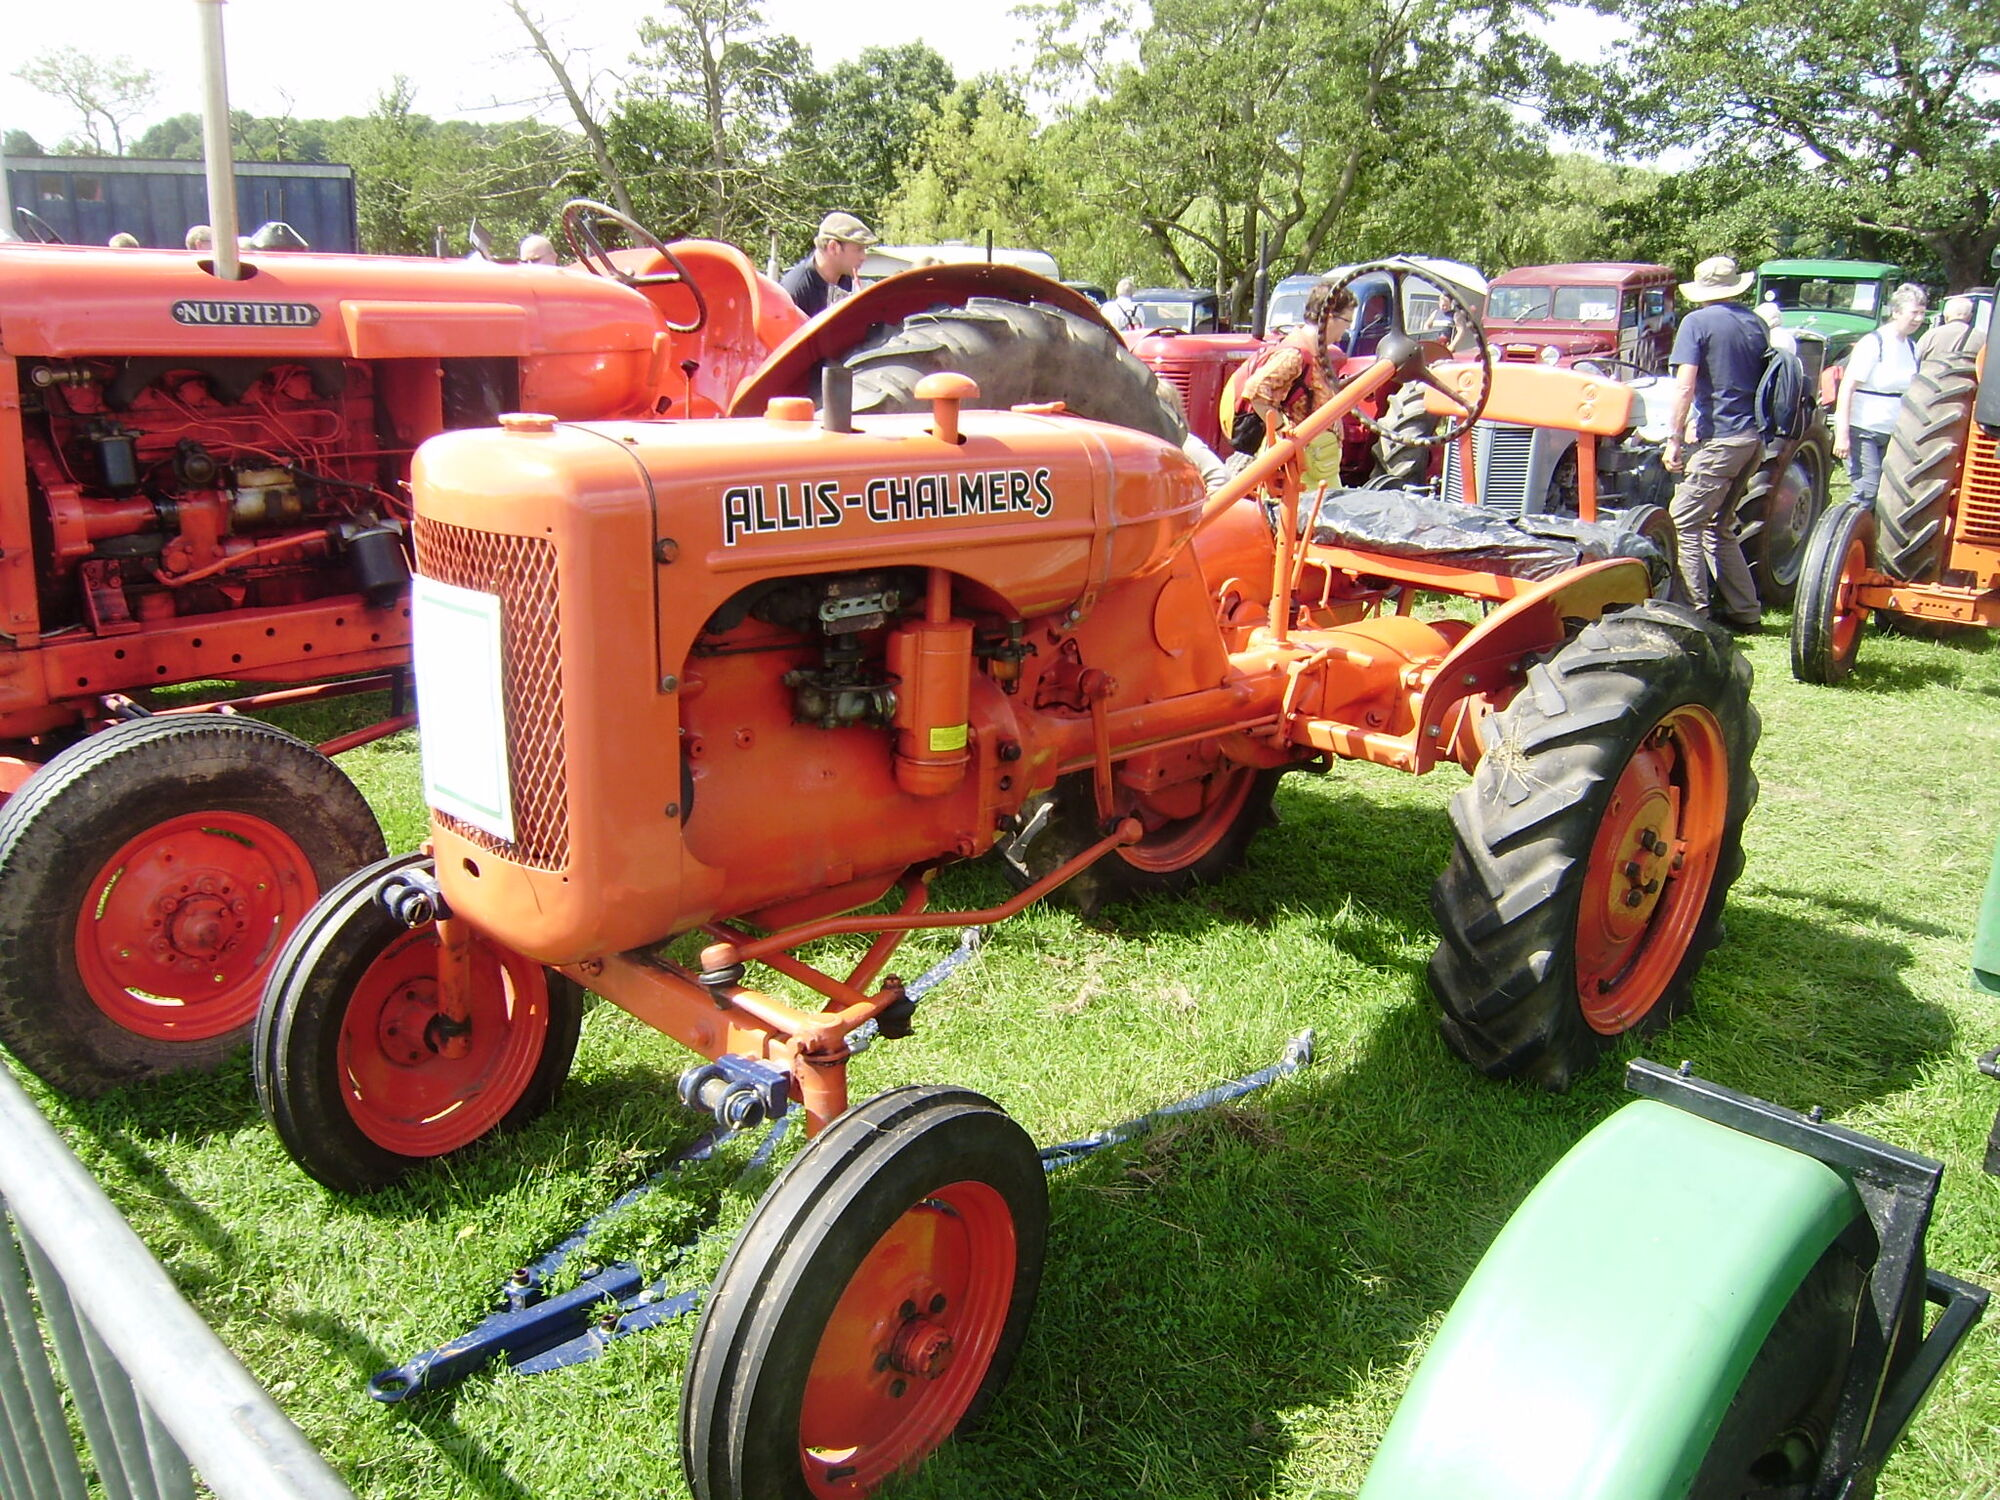 List of allis chalmers tractors tractor construction plant wiki fandom powered by wikia